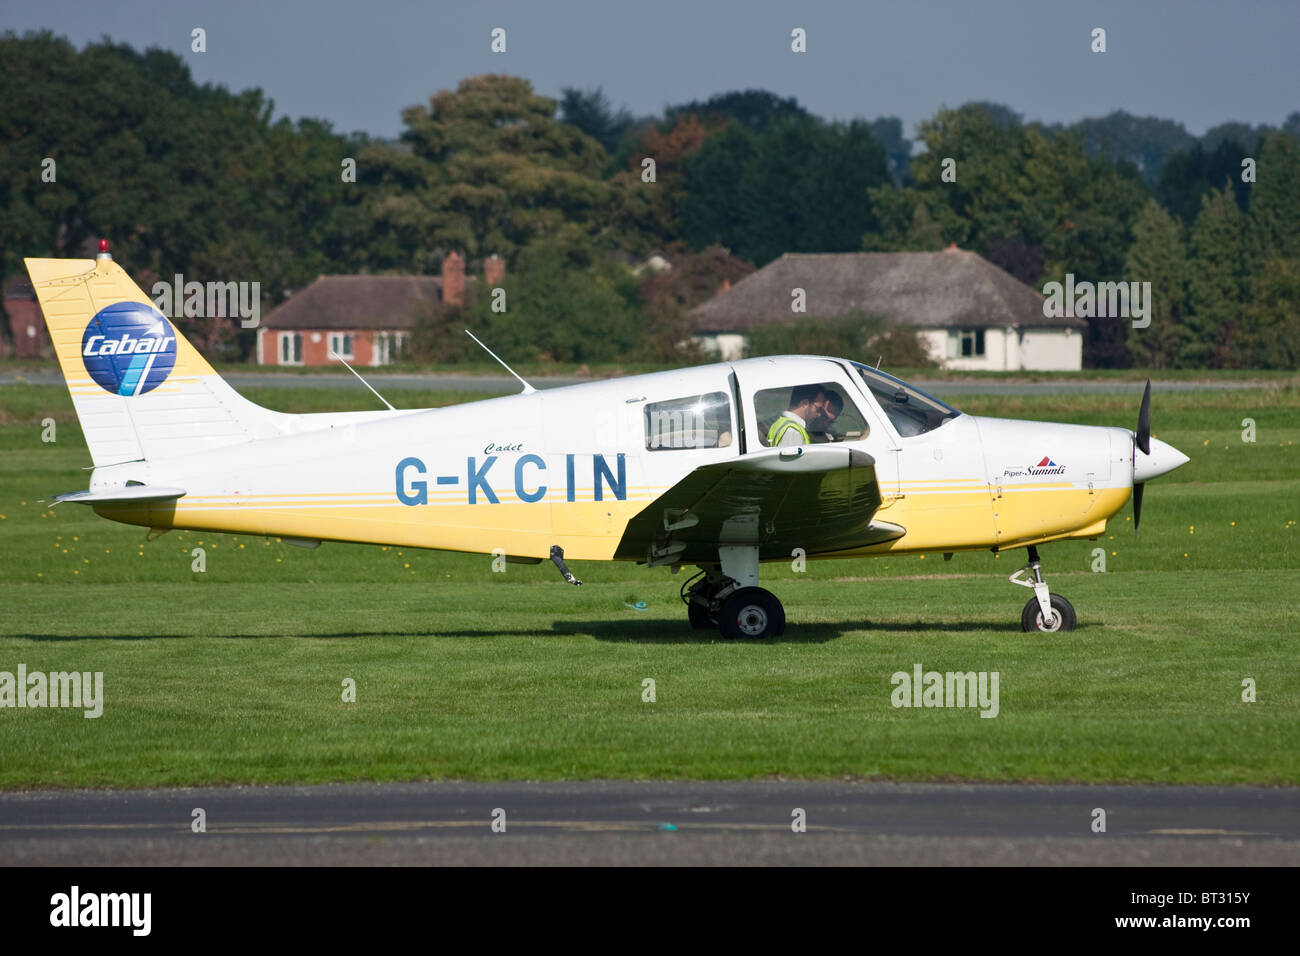 Small single engined aircraft getting ready for take off - Stock Image